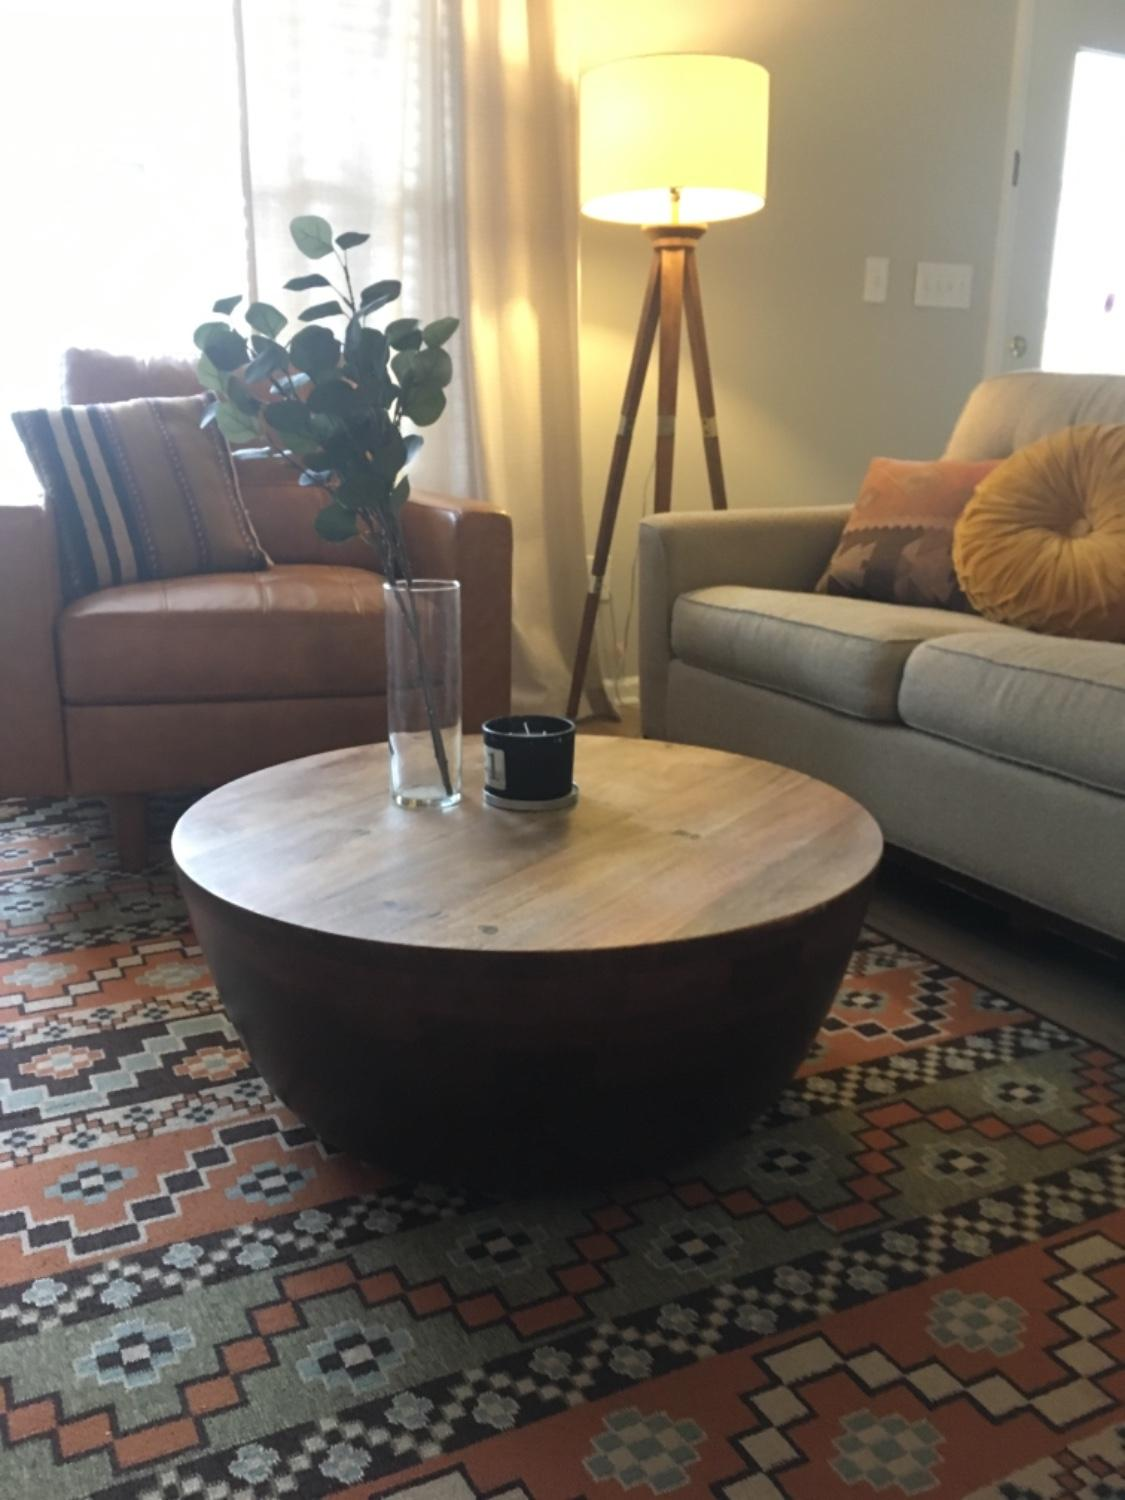 avani coffee table pier imports drum accent desk lamp teak driftwood threshold chair side cream bedside tables nautical globe lights bar style tennis rubber entryway home goods